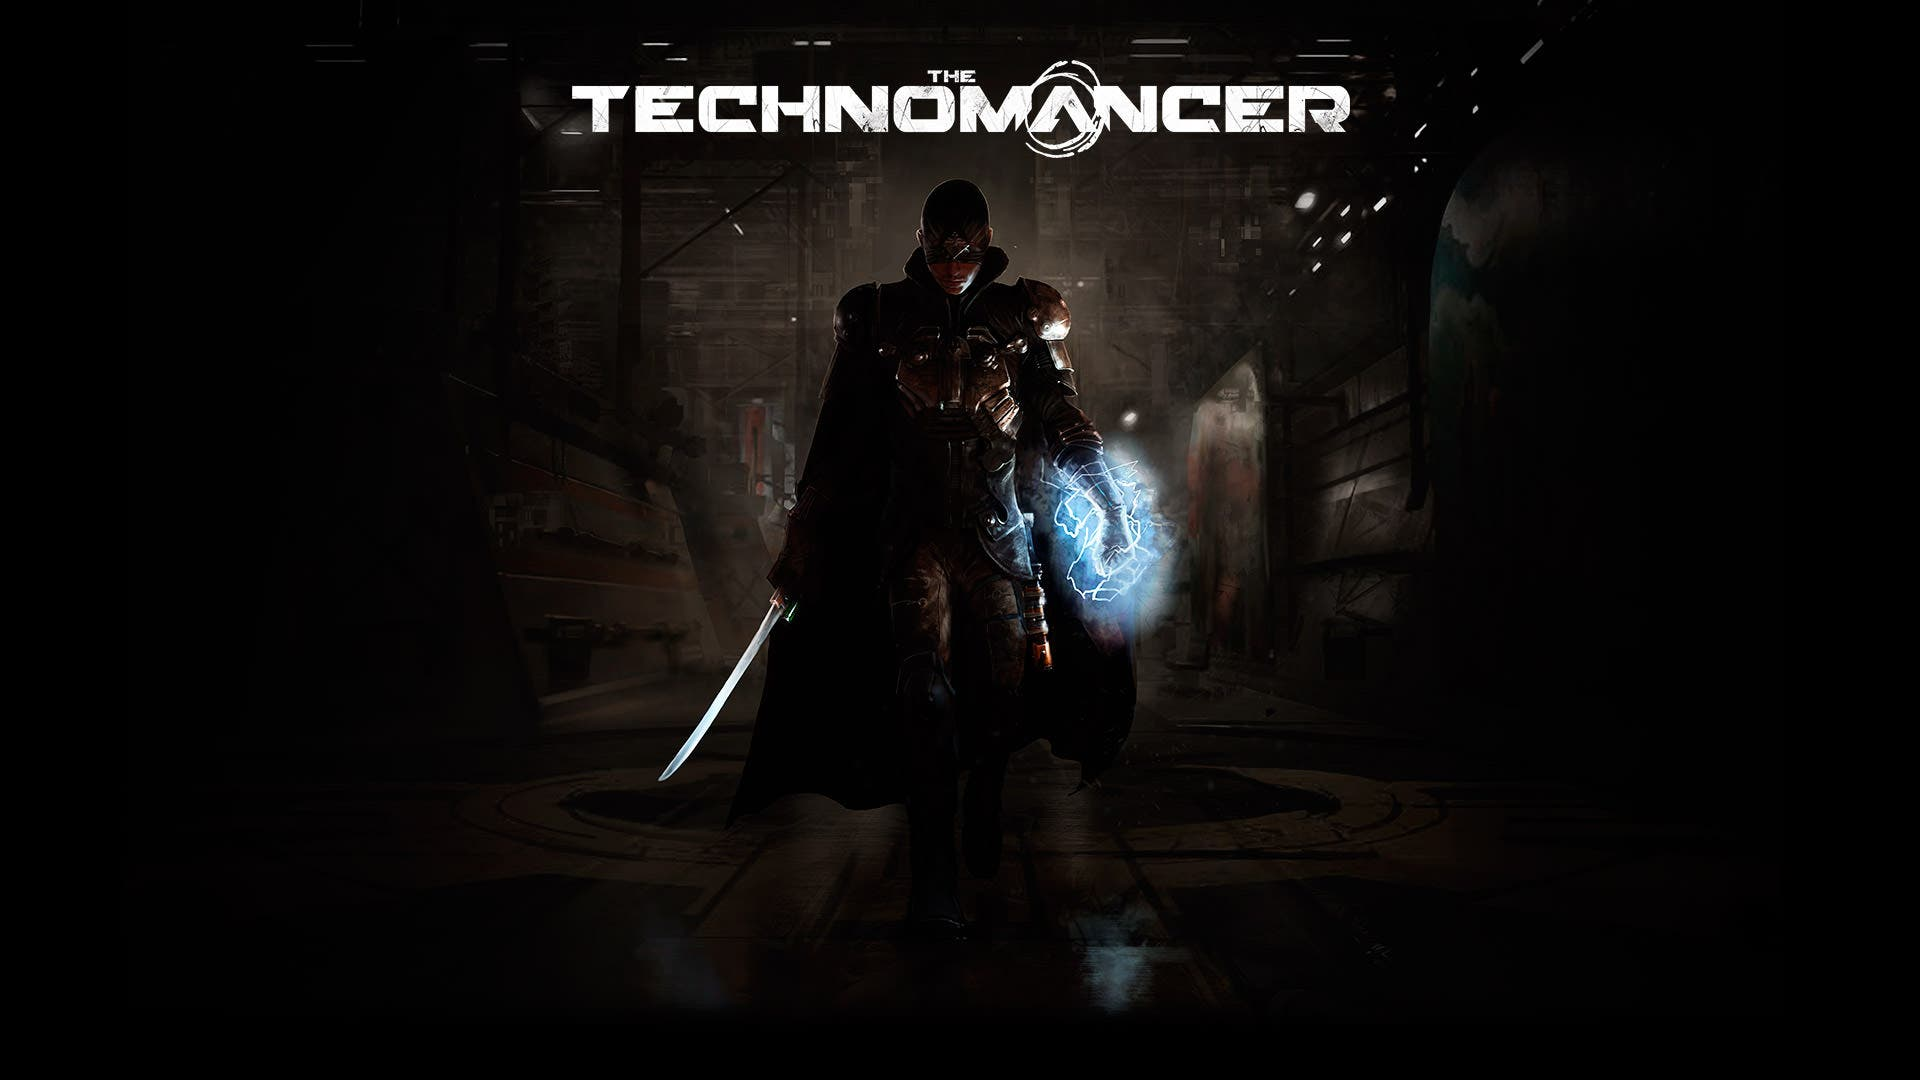 The Technomancer, trailer de primer contacto con gameplay 1